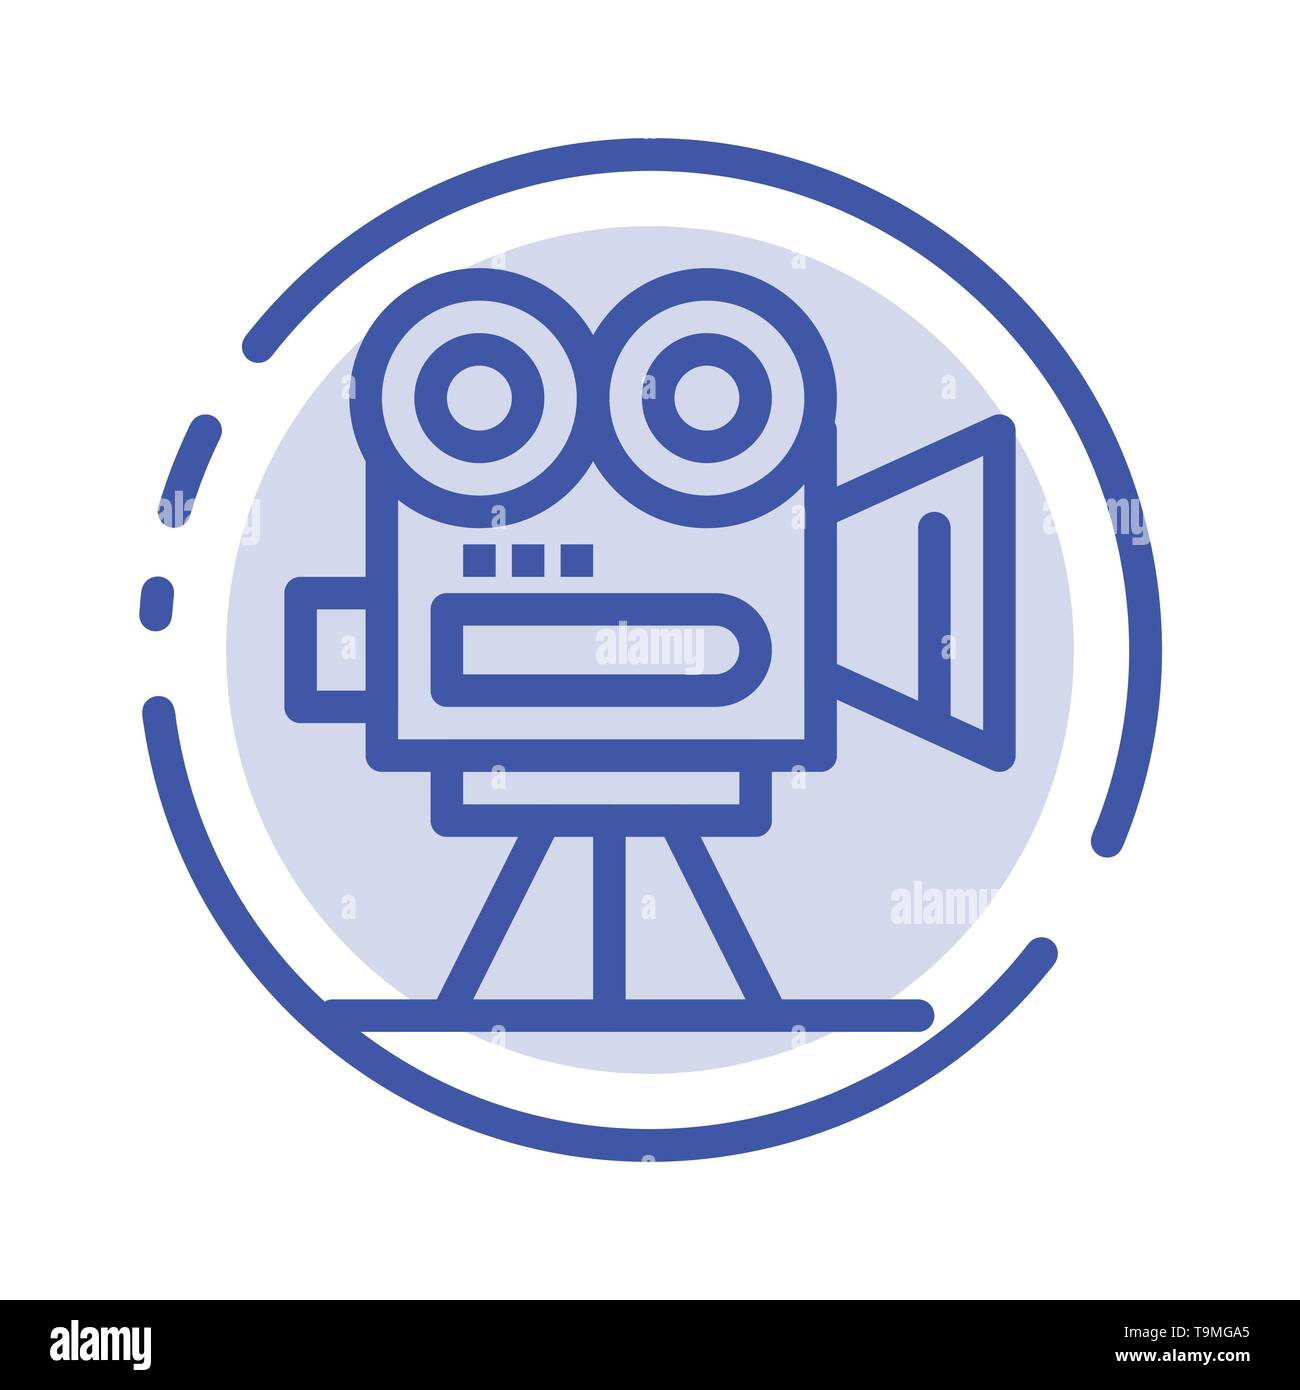 Camera, Capture, Film, Movie, Professional Blue Dotted Line Line Icon - Stock Vector